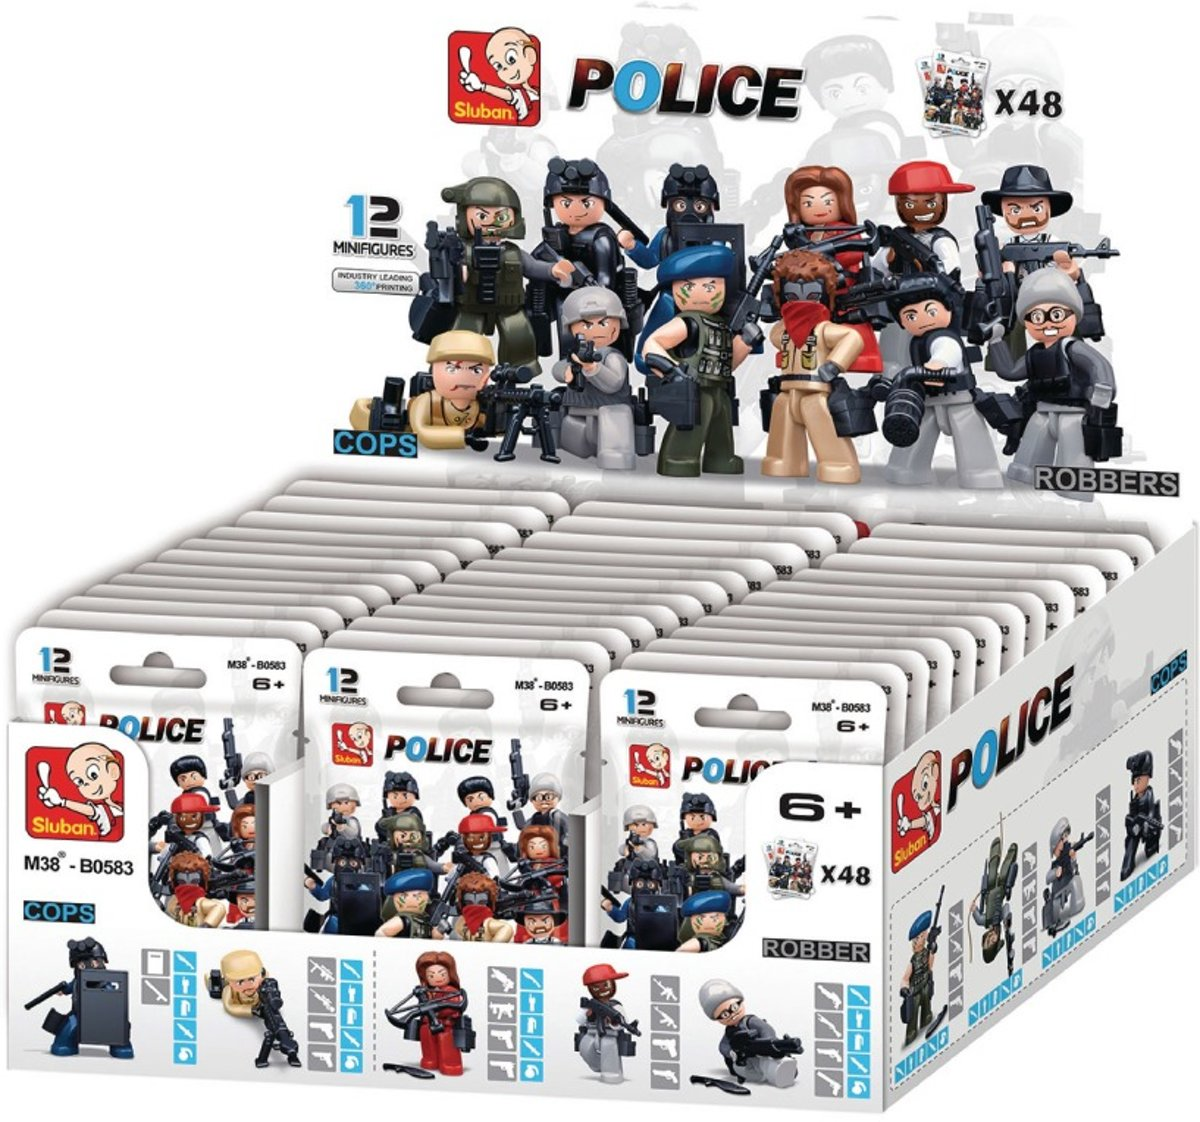 M38-B0583 Police Minifigures